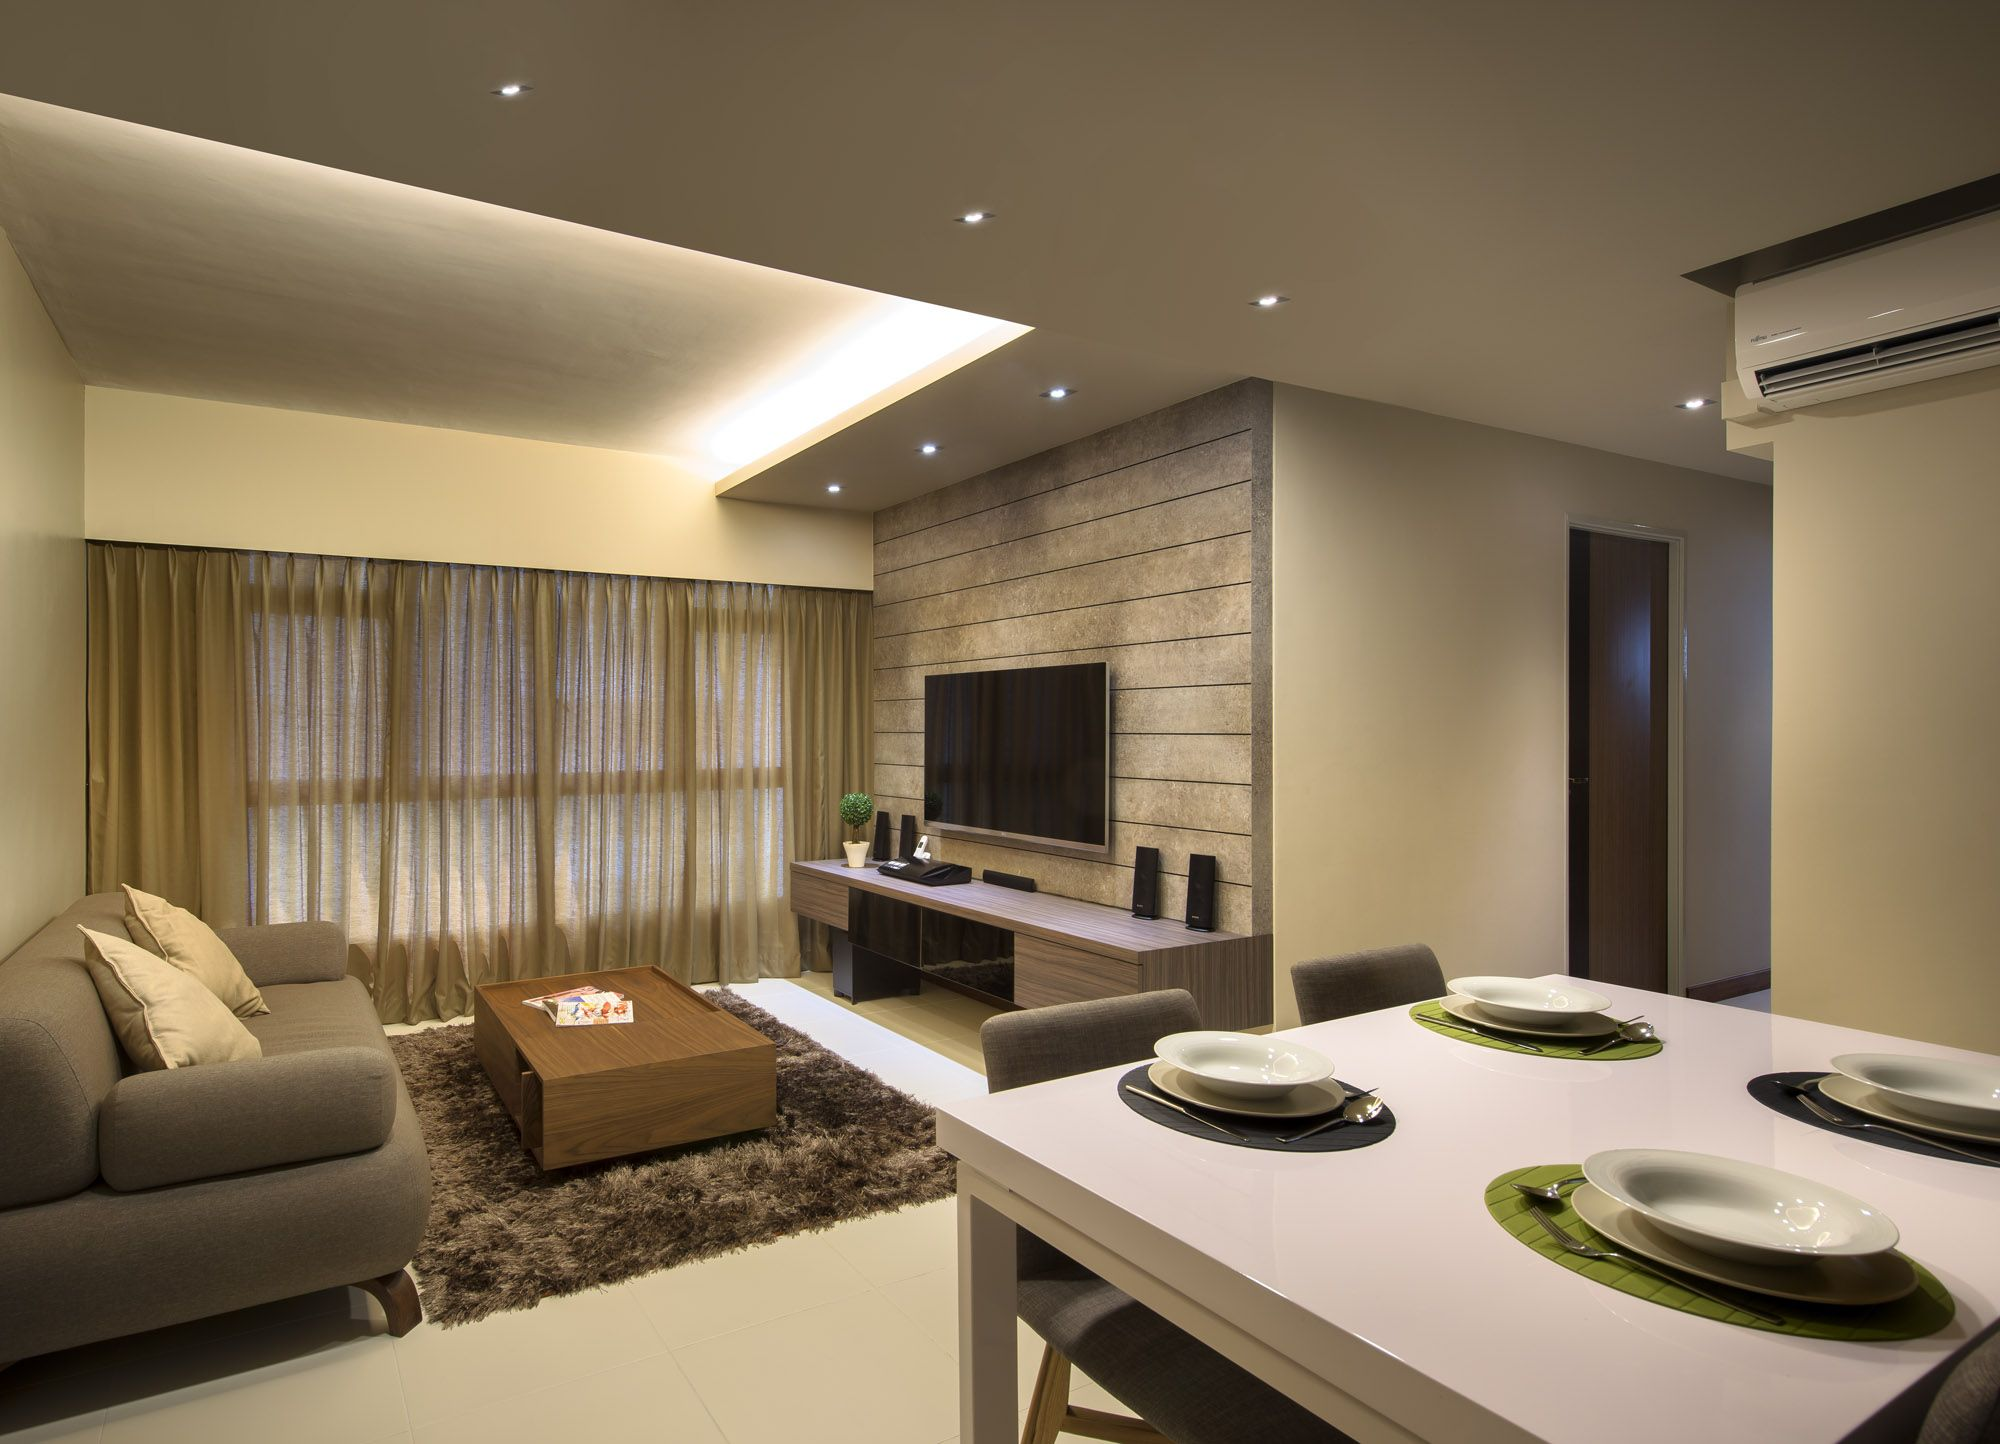 Rezt relax interior design and renovation singapore for Home decorators lighting